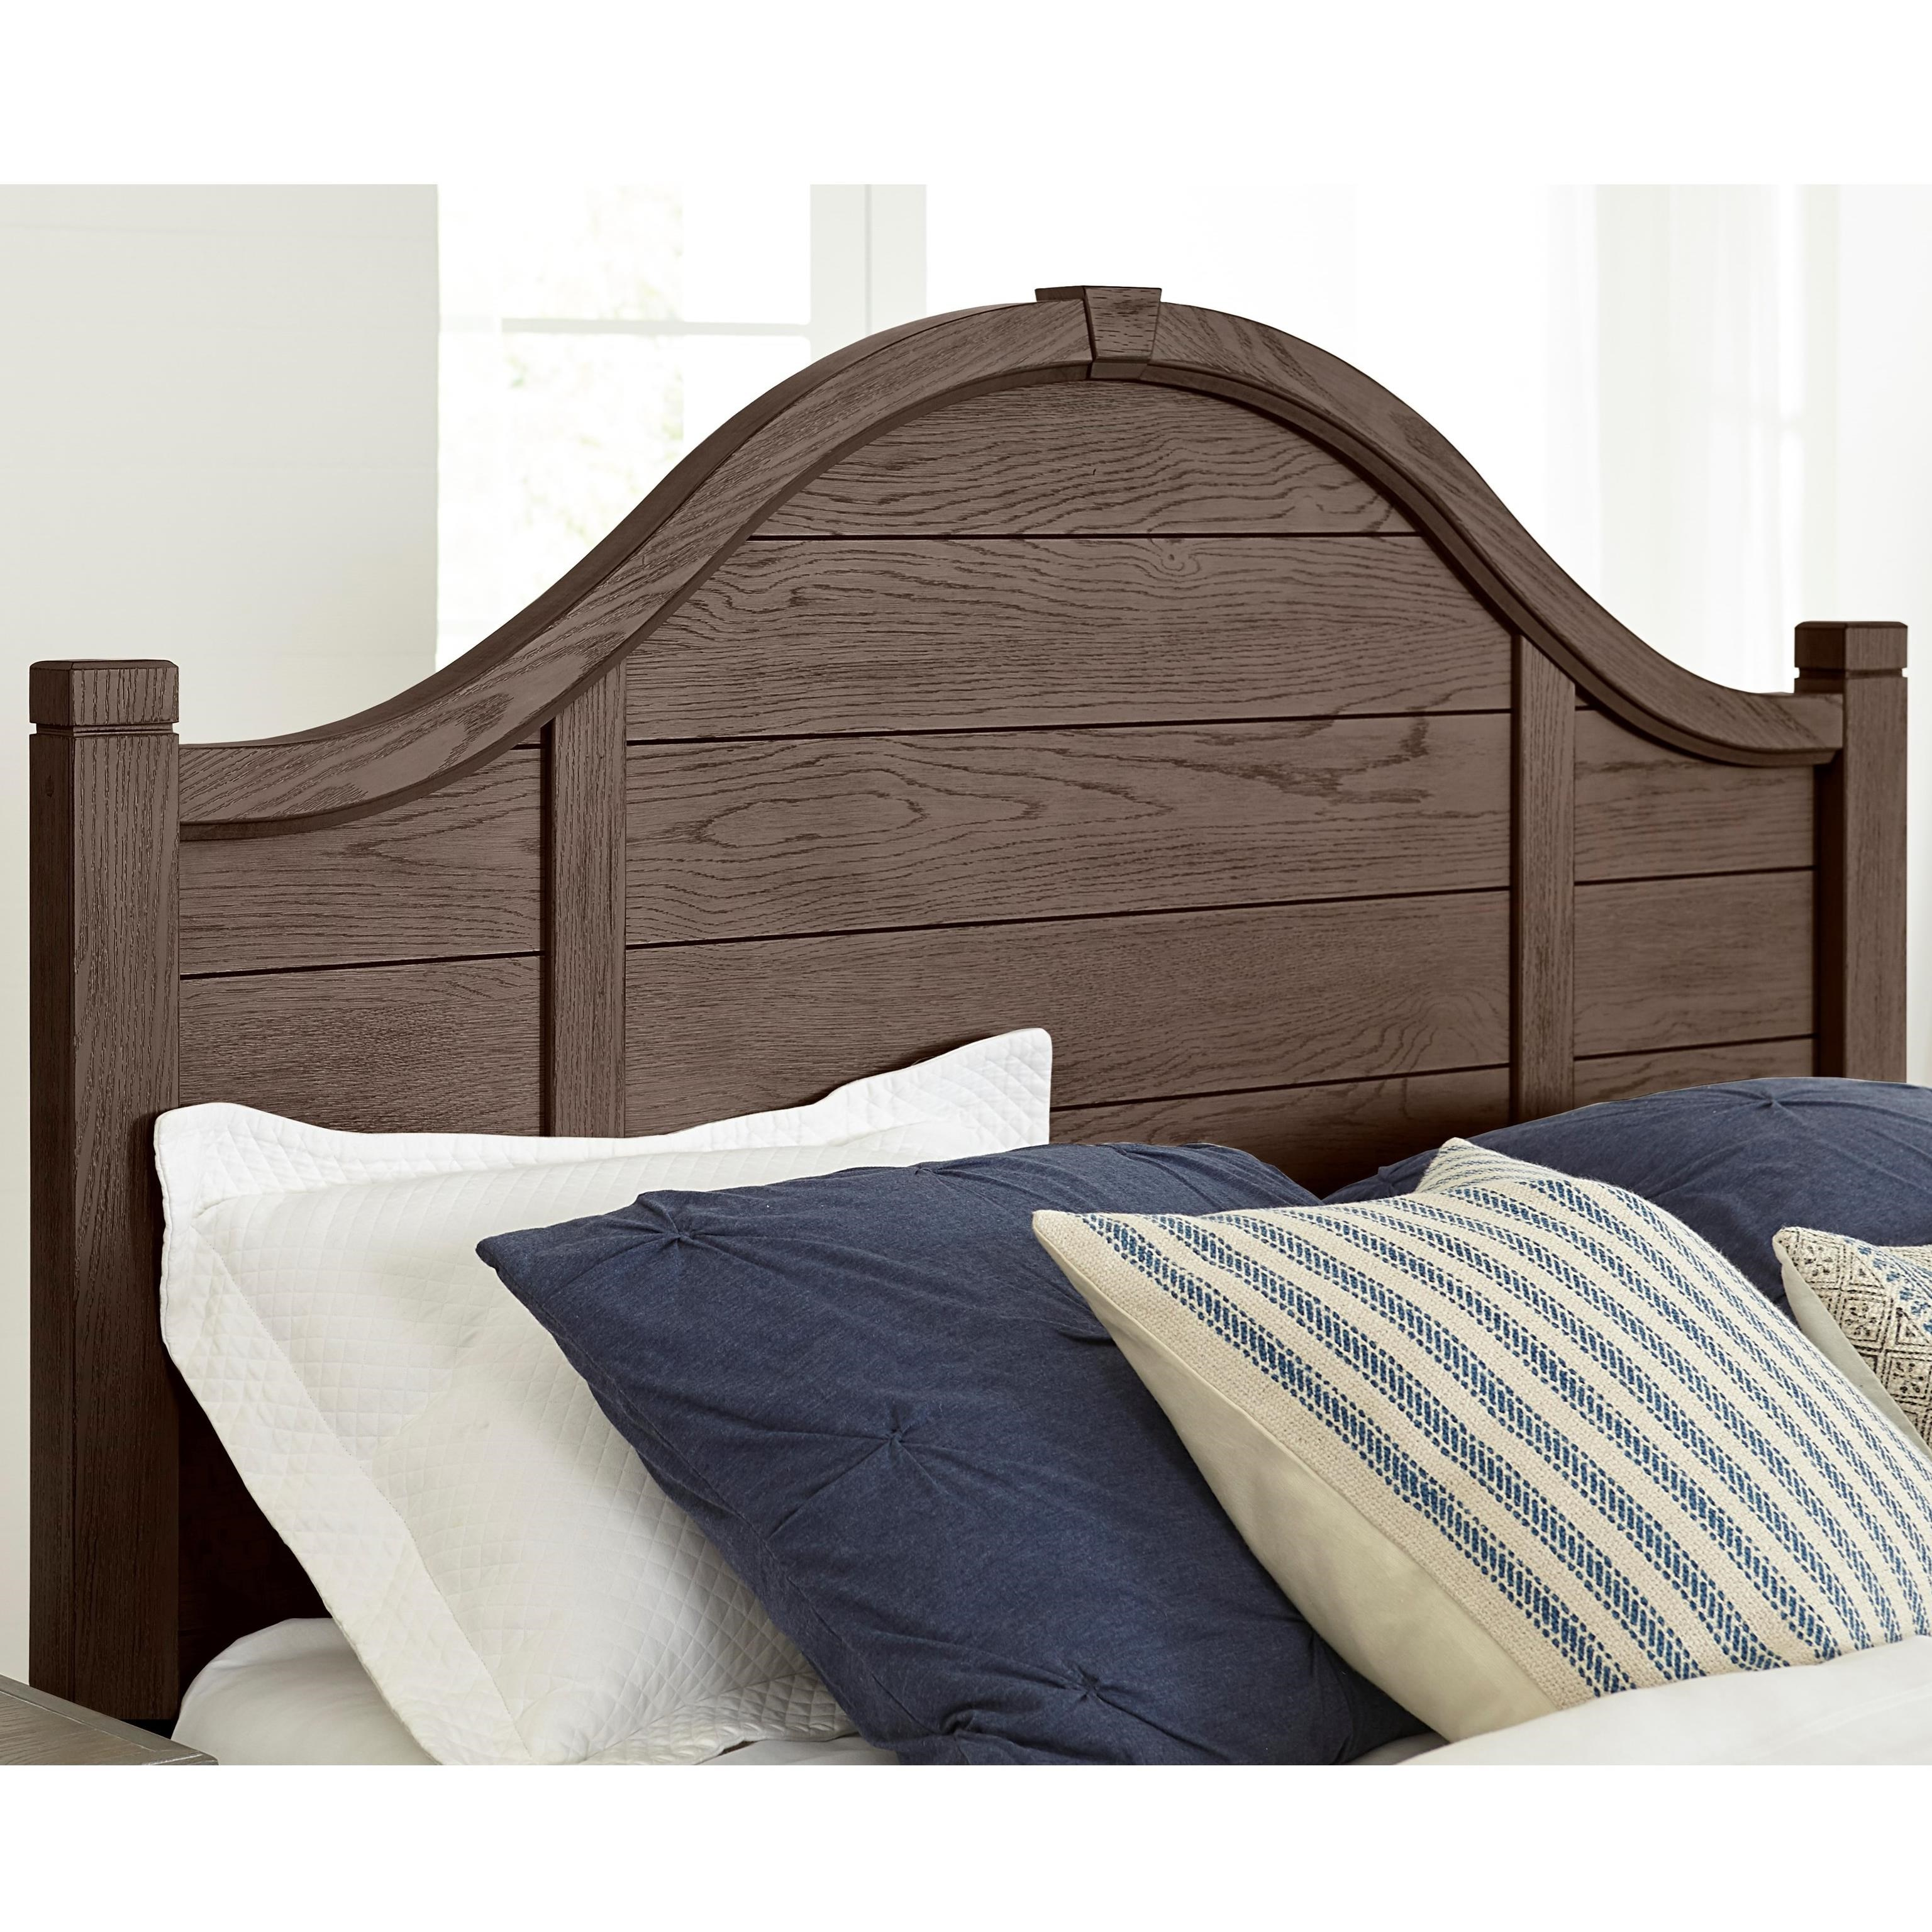 Bungalow Full Arch Headboard by Laurel Mercantile Co. at Johnny Janosik